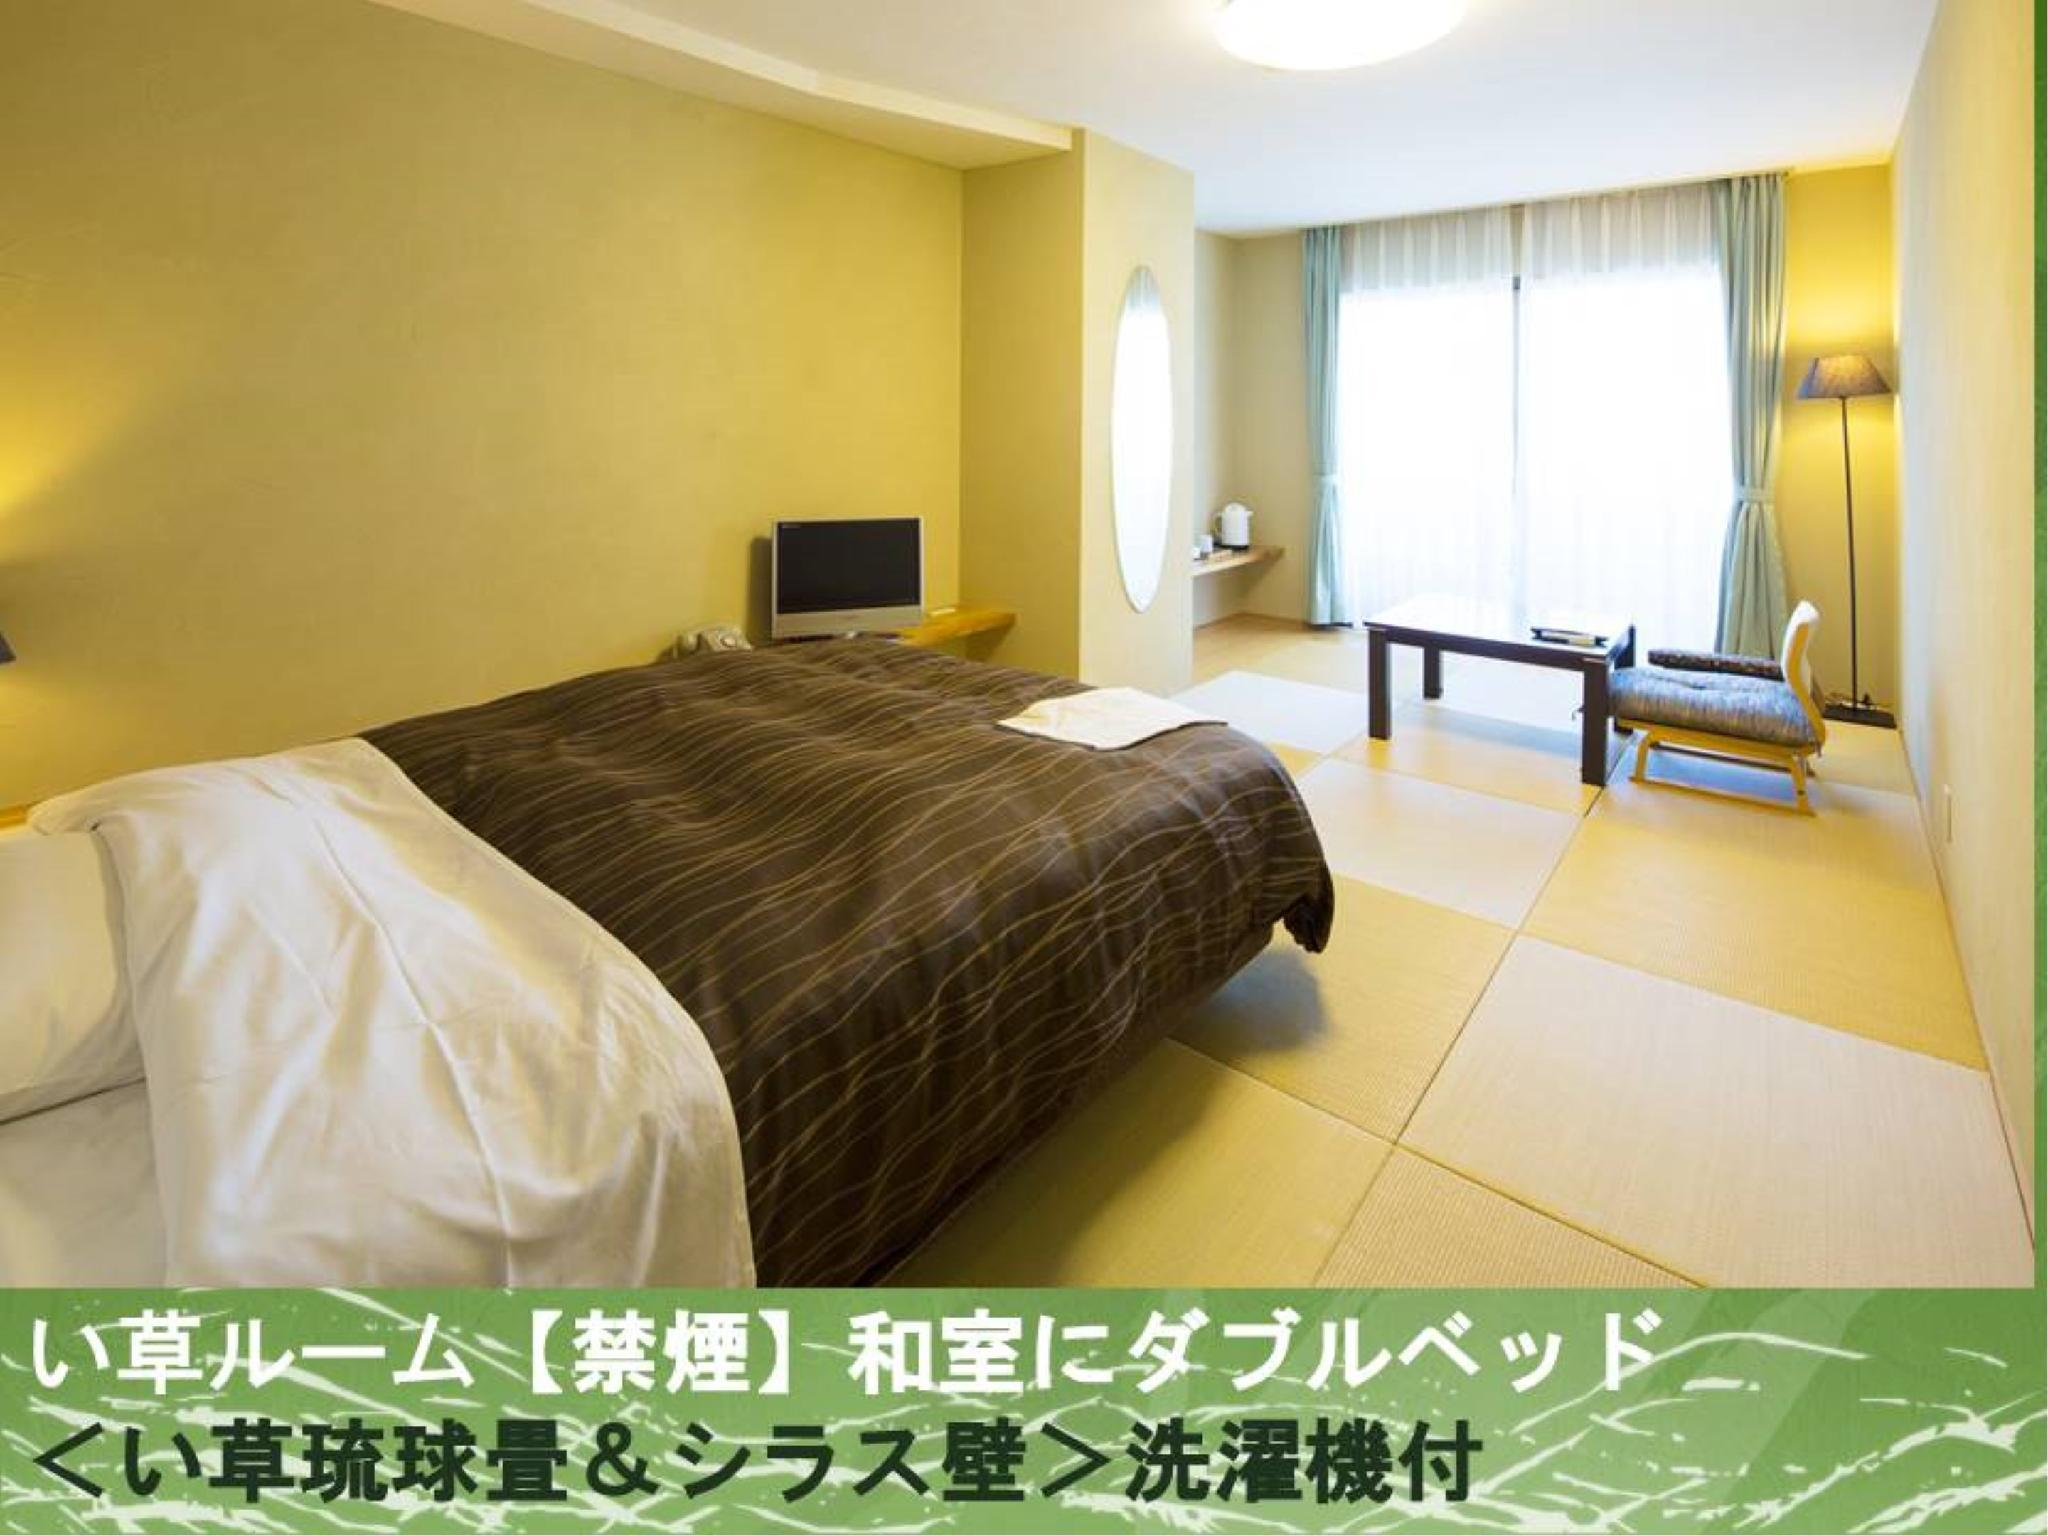 【禁煙】和室ダブルベッド<い草琉球畳&シラス壁>洗濯機付 (Japanese/Western-style Room with Washing Machine (Igusa Ryukyu Tatami & Shirasu Wall + Double Bed))